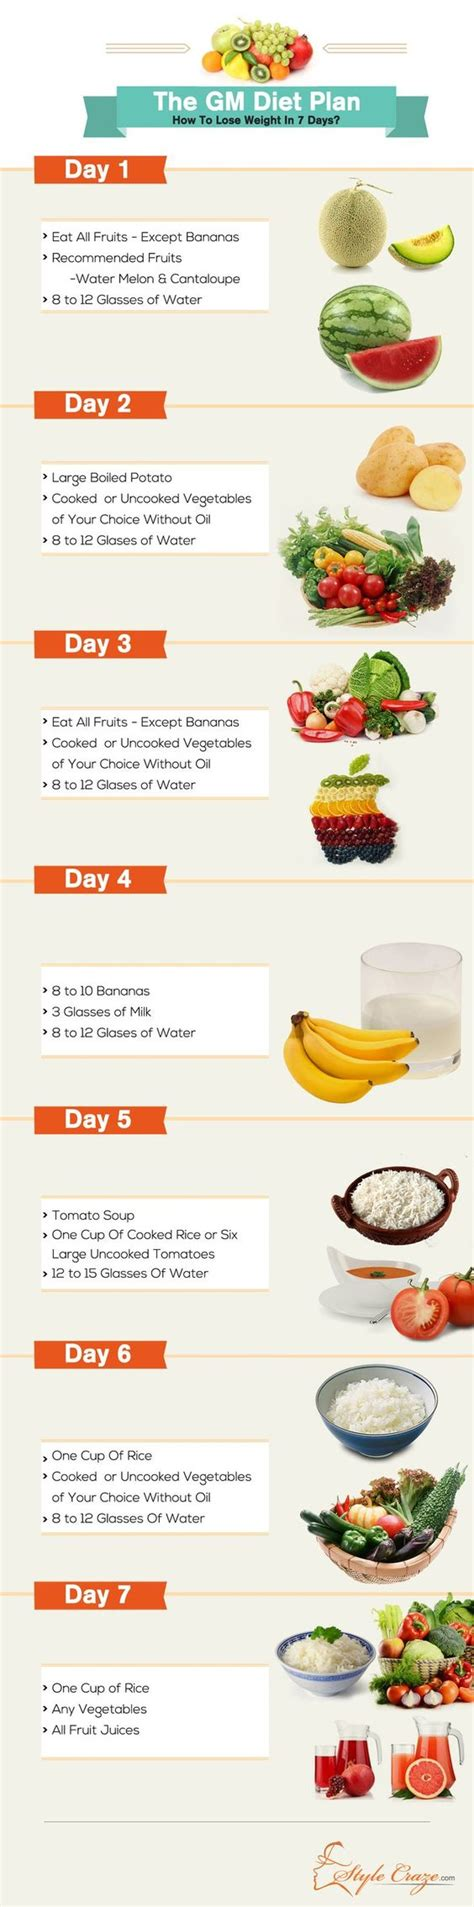 Simple Detox Diets 1 Week by The Gm Diet Plan How To Lose Weight In Just 7 Days To